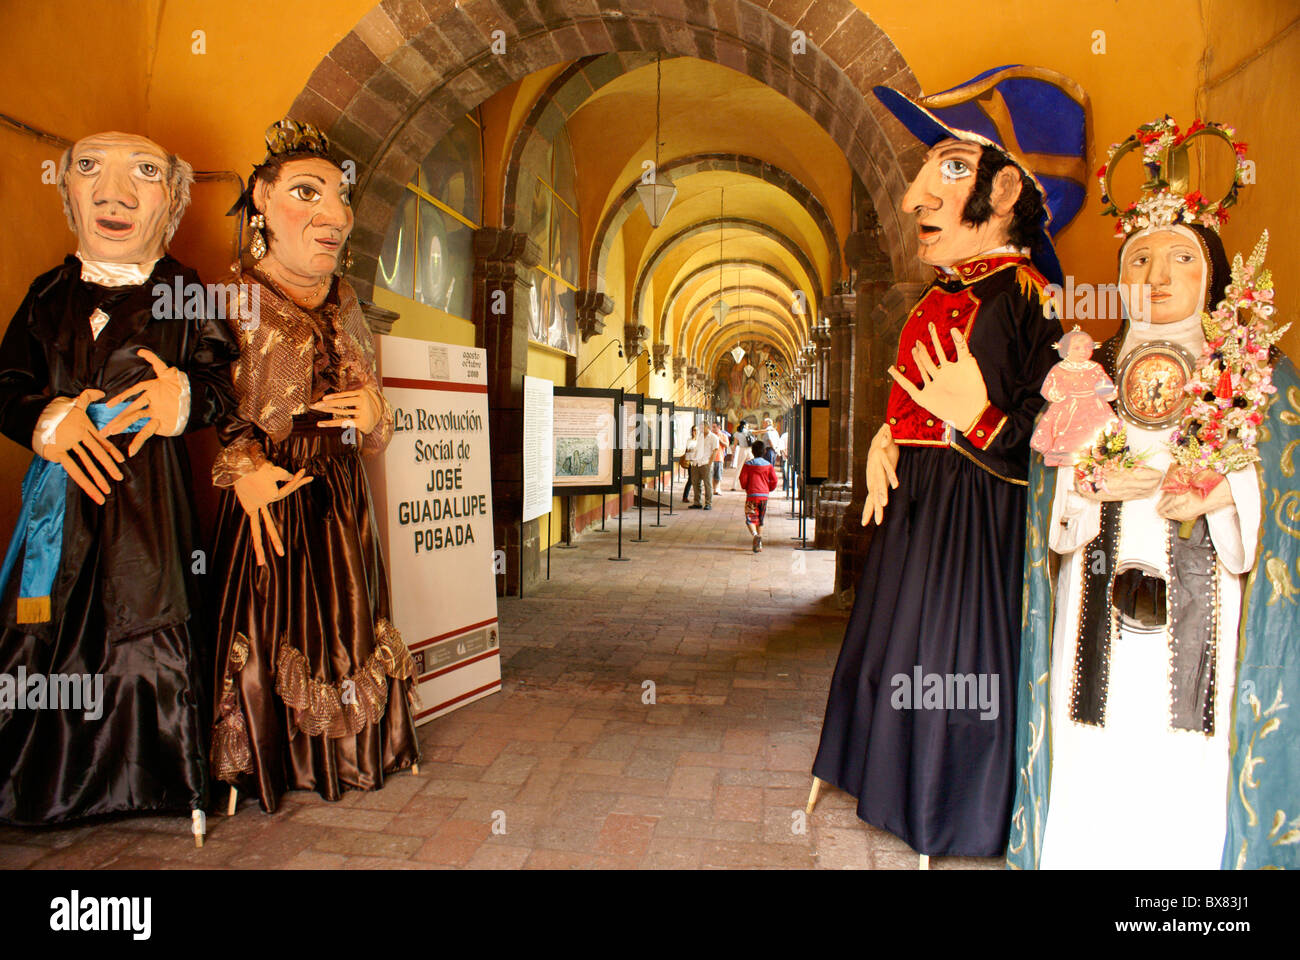 Mojigangas,giant papier mache puppets in the Bellas Artes, San Miguel de Allende, Mexico. - Stock Image